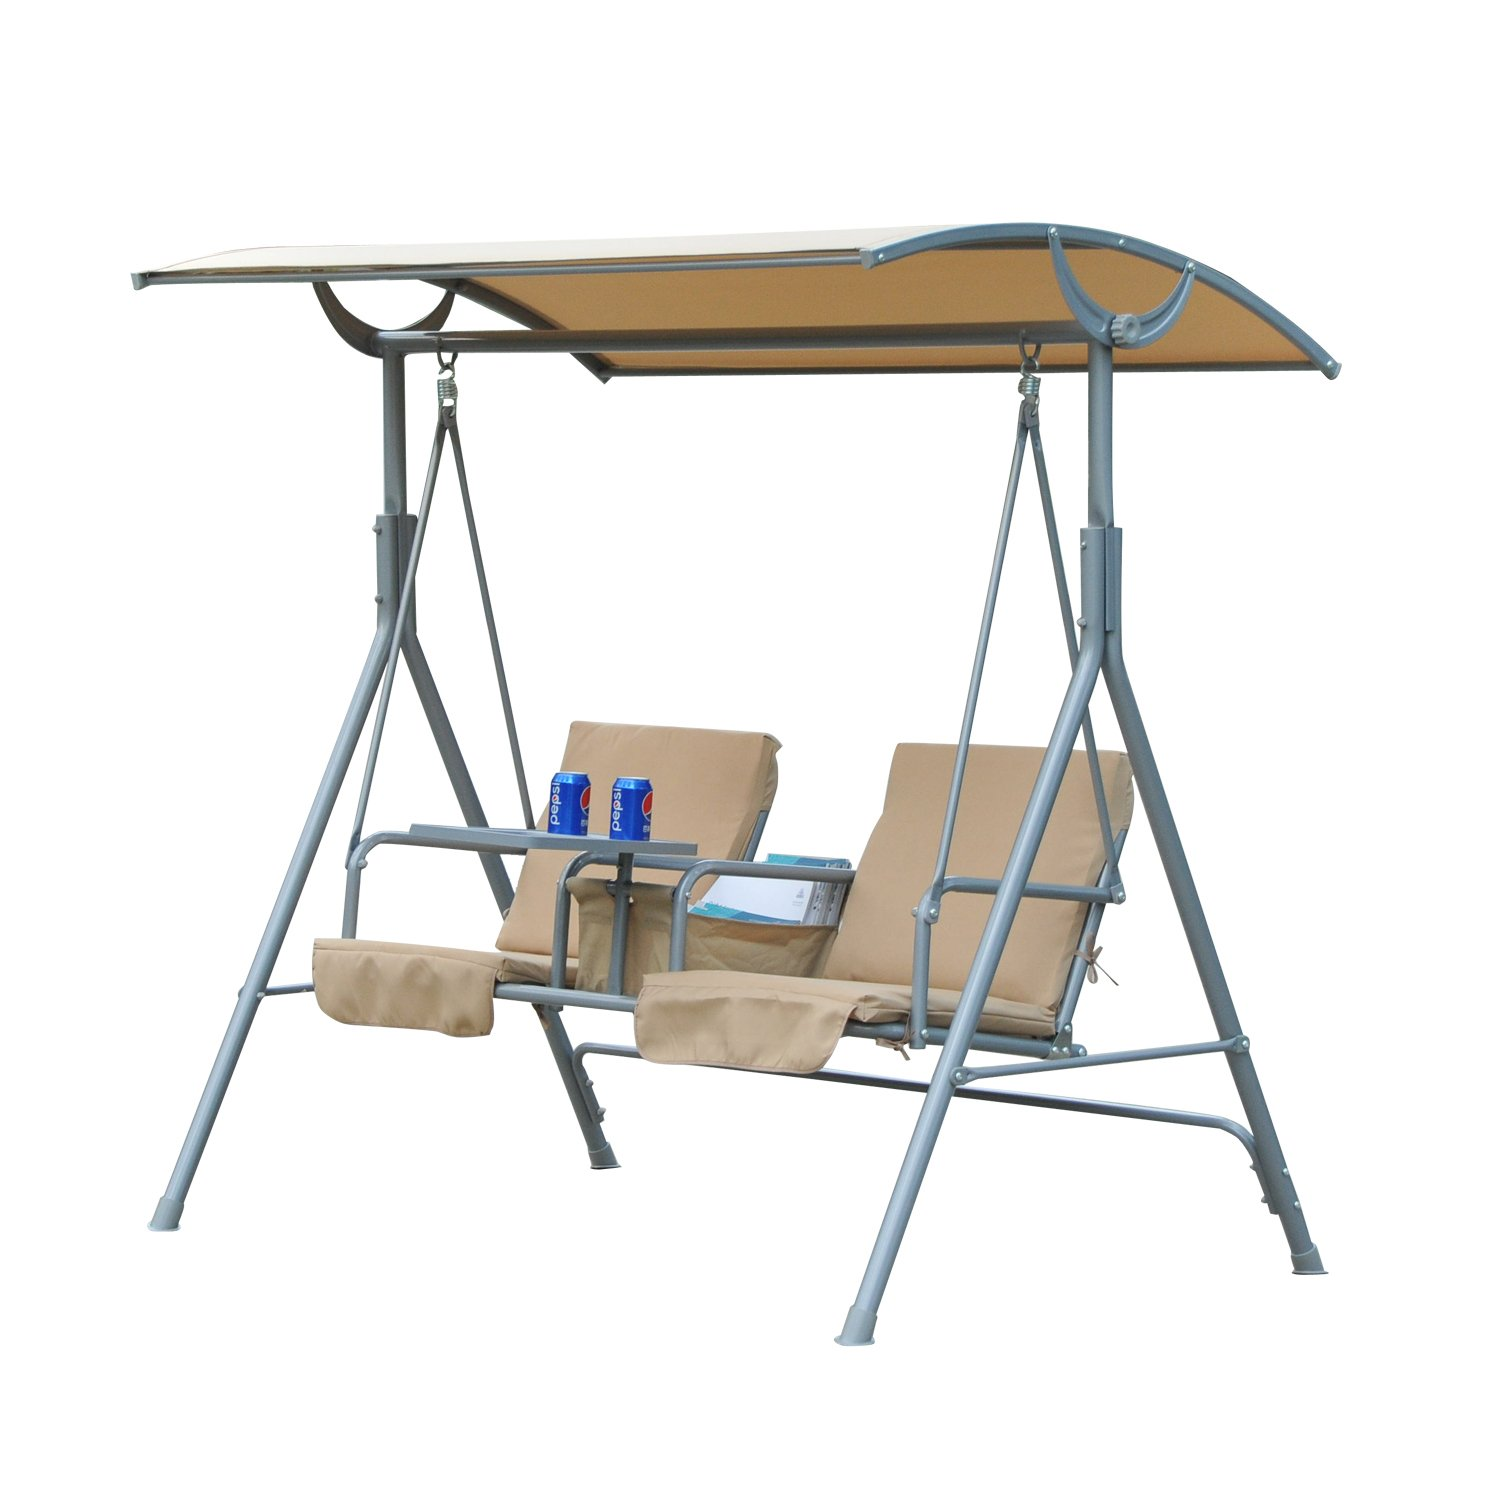 Outsunny 2 Person Covered Patio Swing w/ Pivot Table & Storage Console - Beige by Outsunny